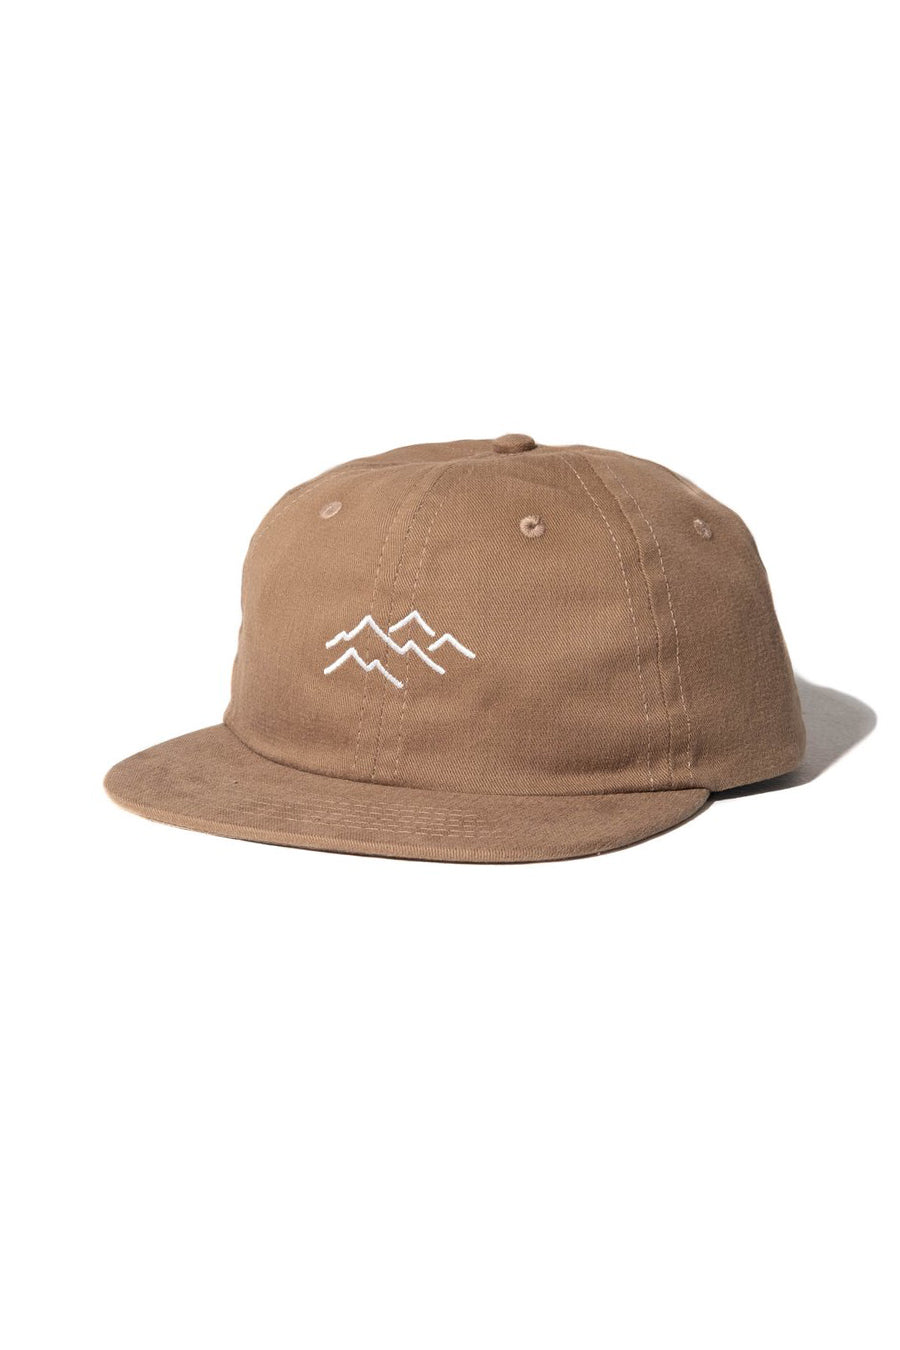 Summit Ball Cap